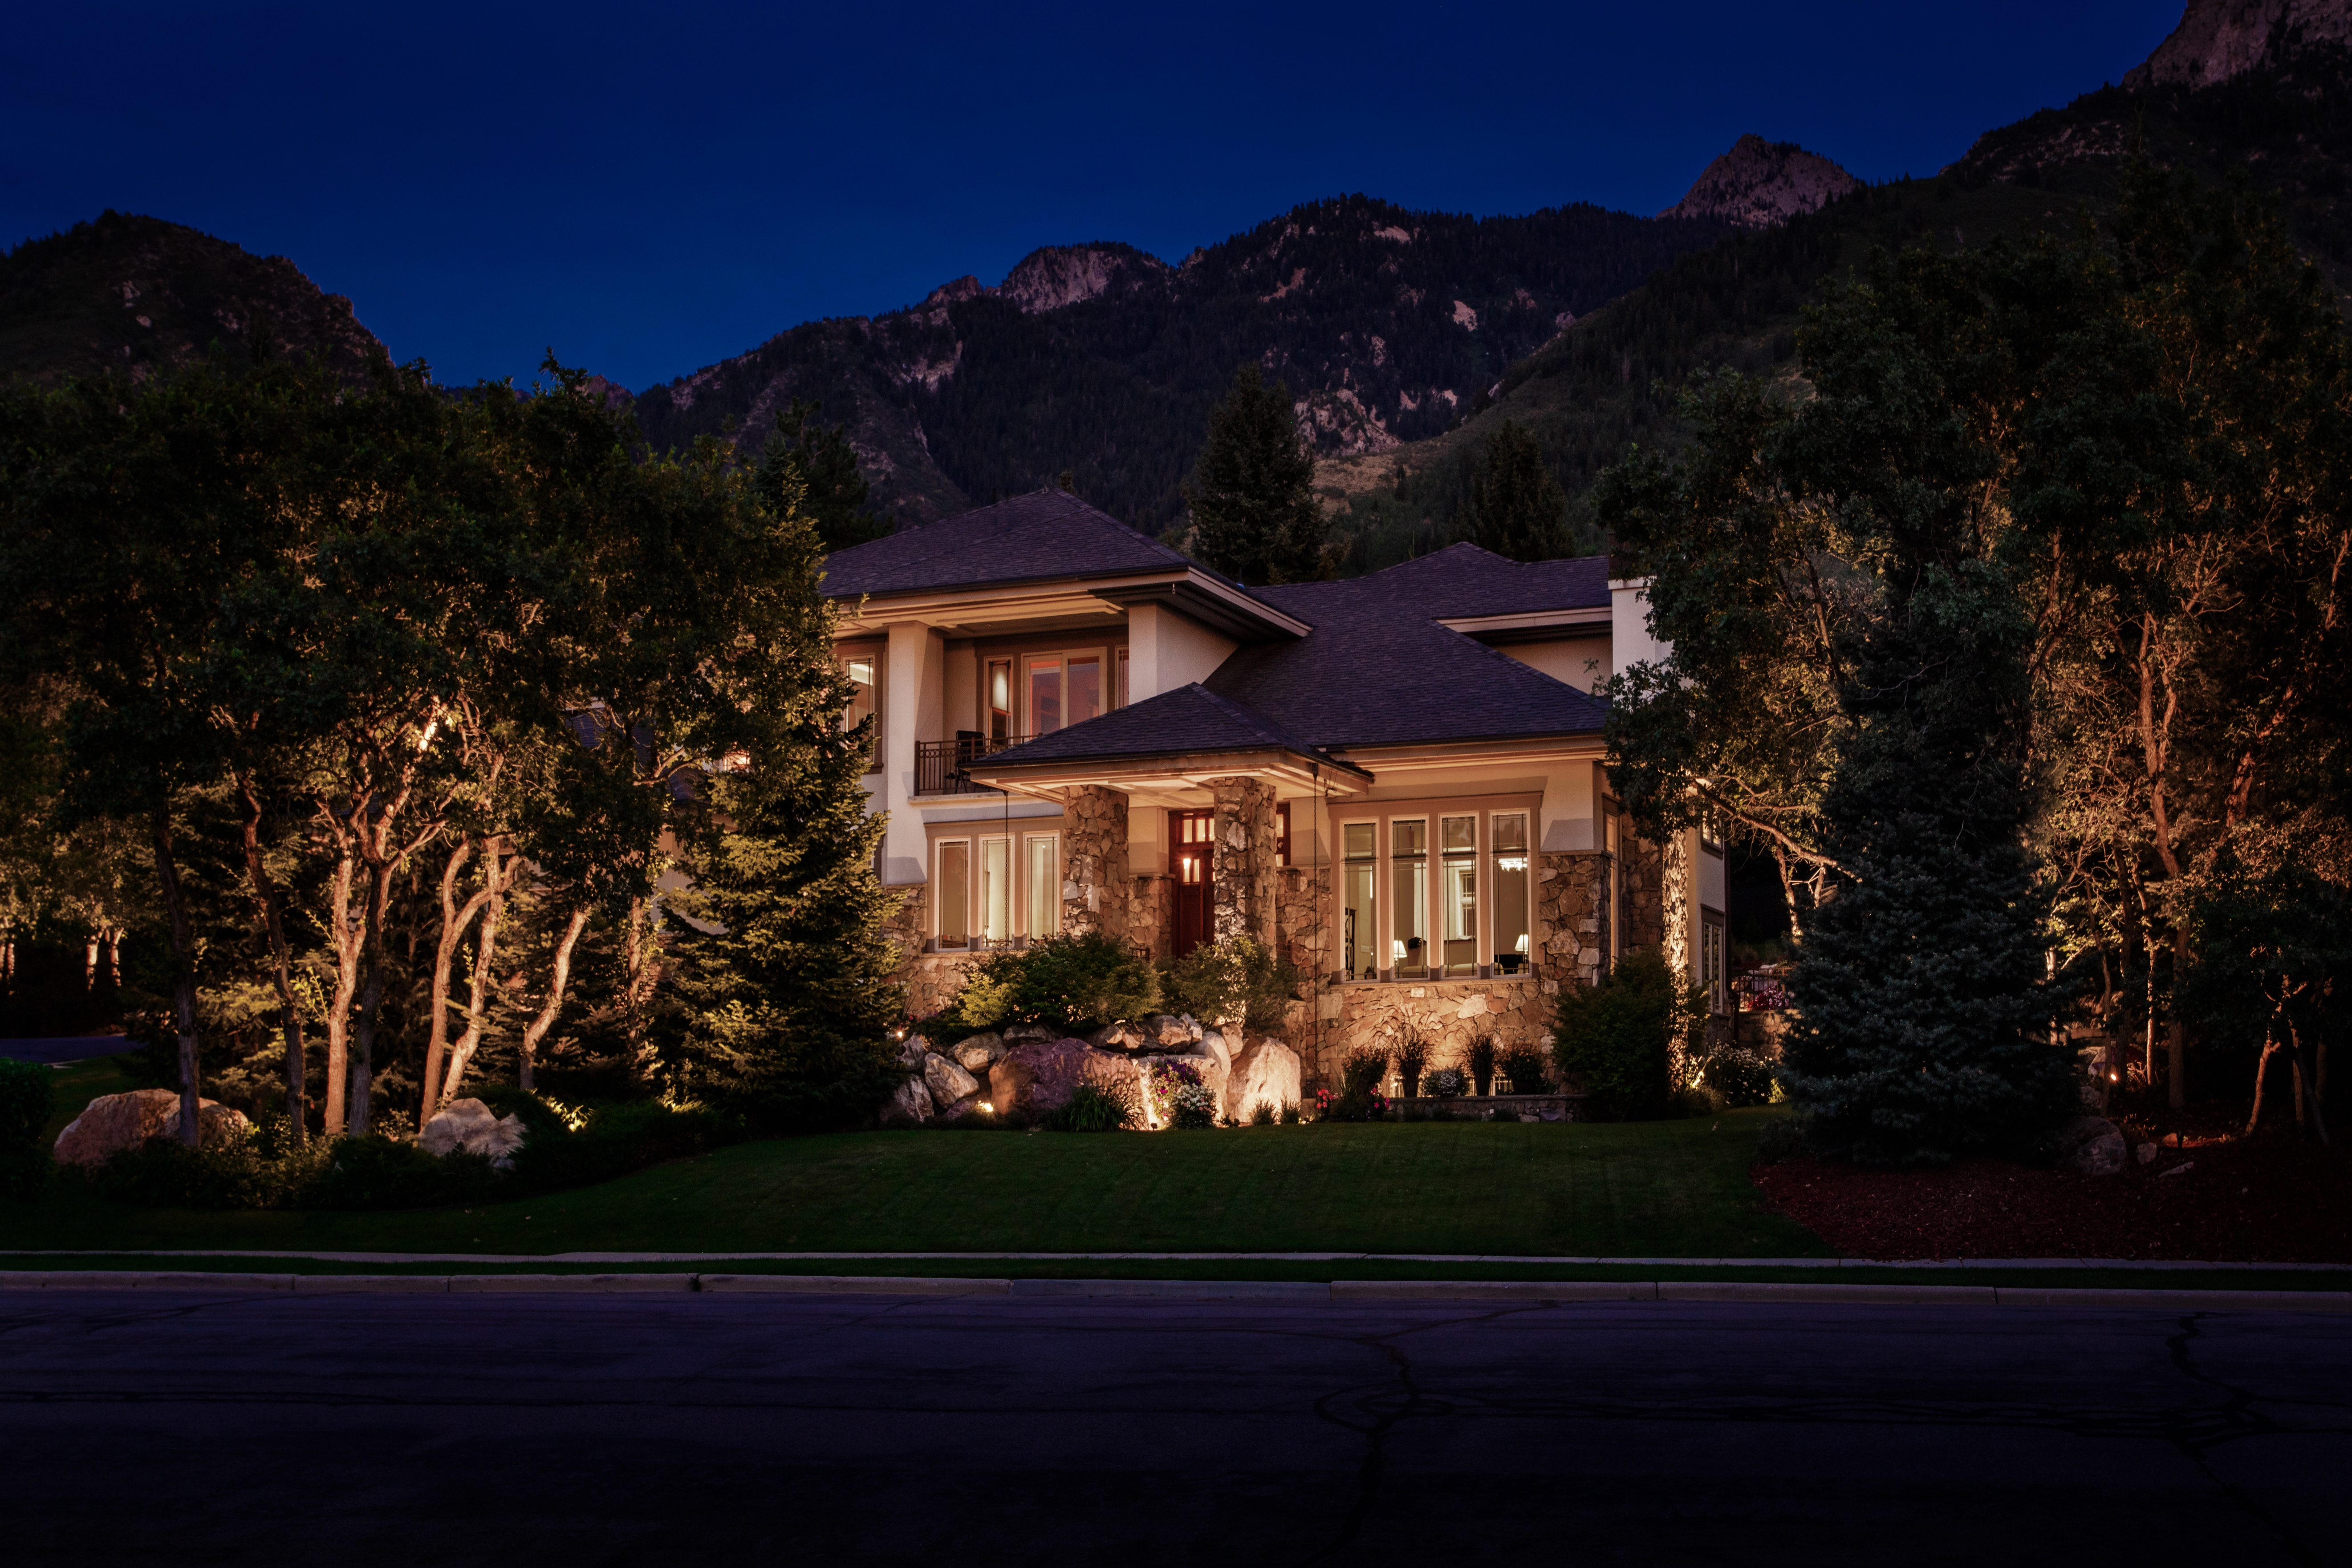 SLC-Olympus-cove-security-lighting